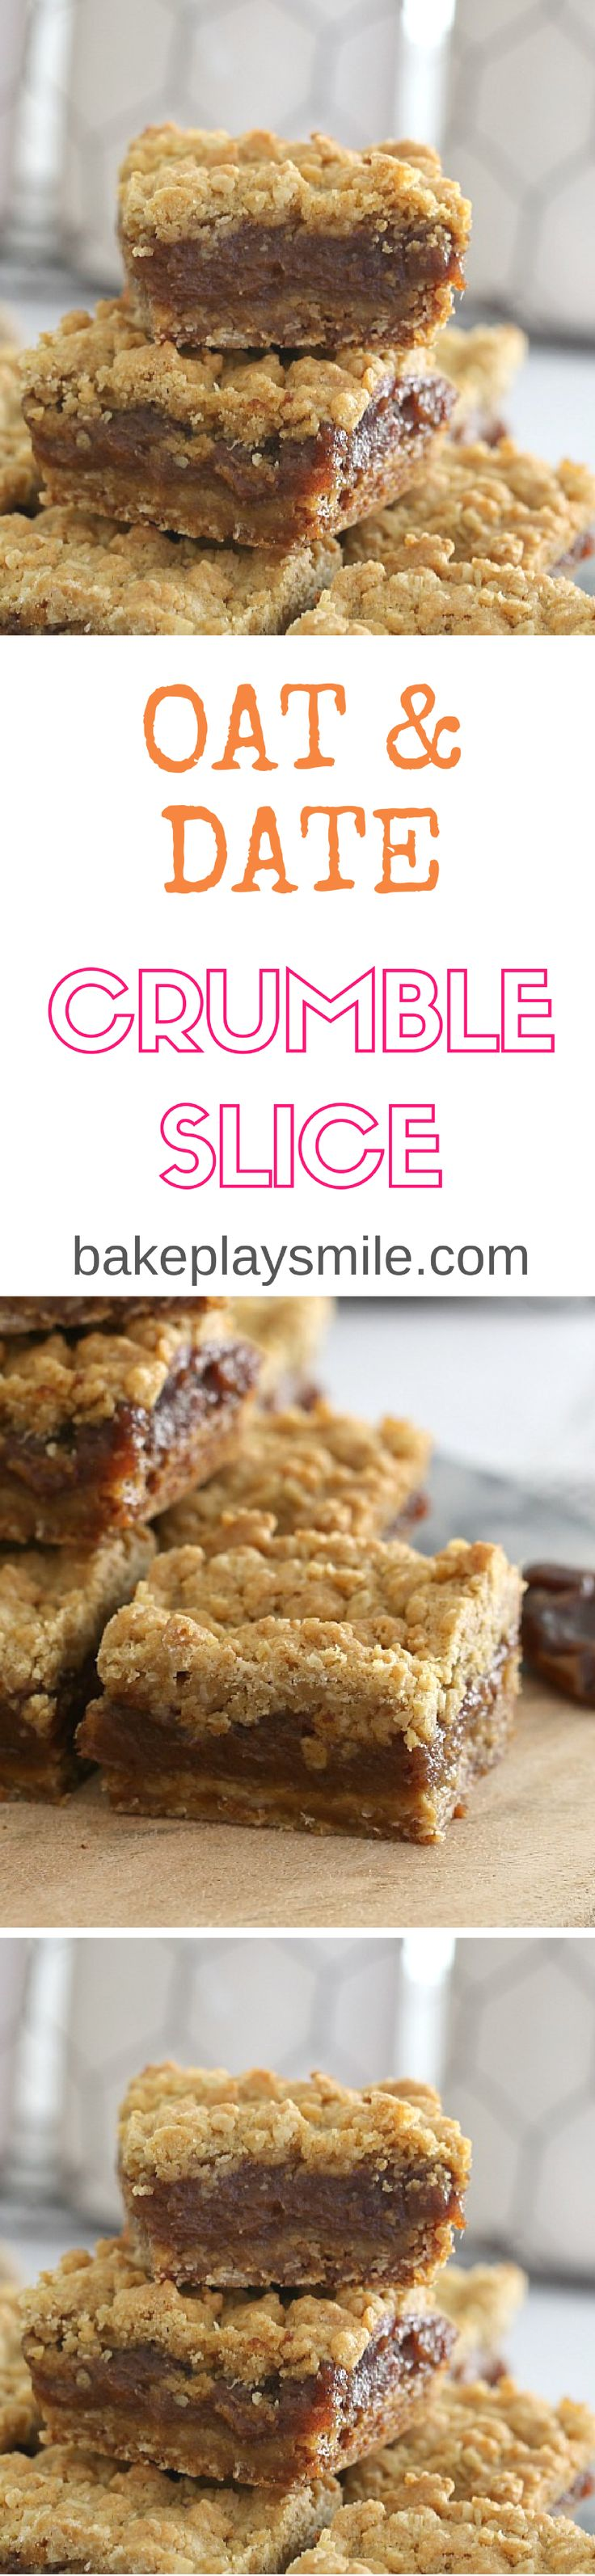 Classic Oat & Date Crumble Slice – an oaty base, sweet date filling and crumbly topping… it doesn't get much better than this! #oat #date #crumble #slice #bars #baking #dessert #easy #thermomix #conventional